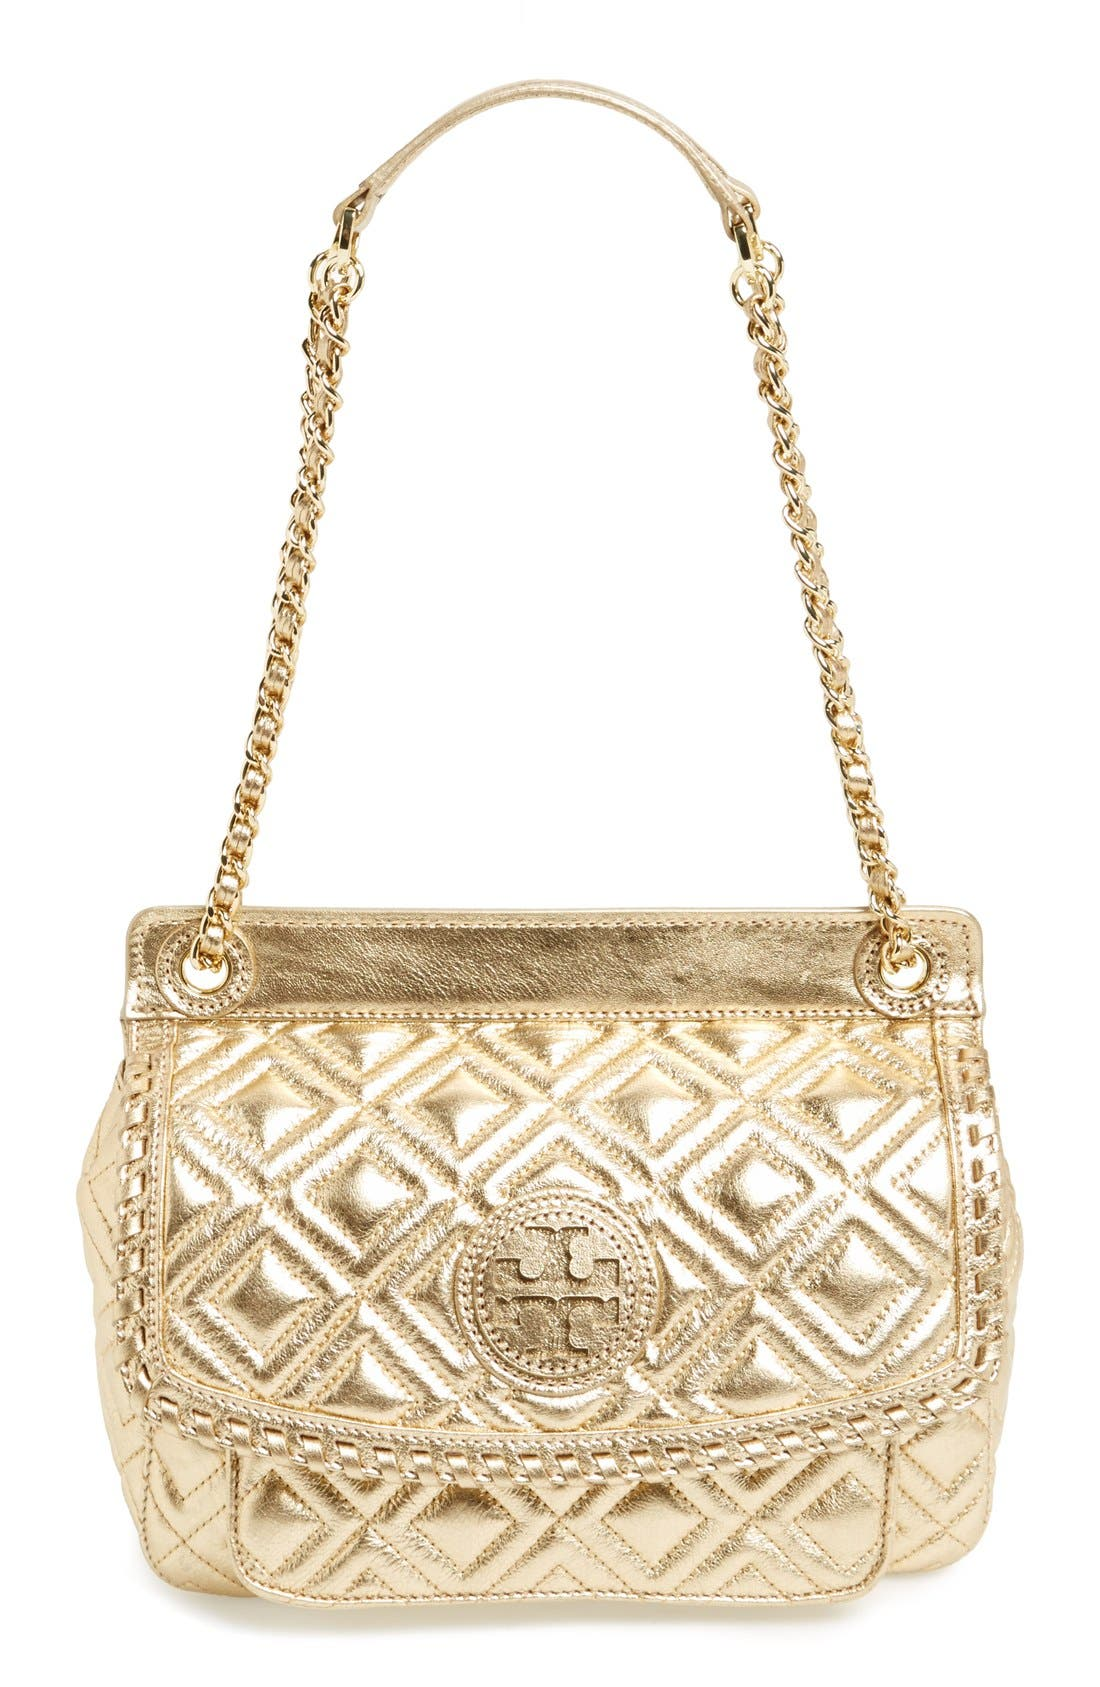 Tory Burch Small Marion Quilted Lambskin Crossbody Bag